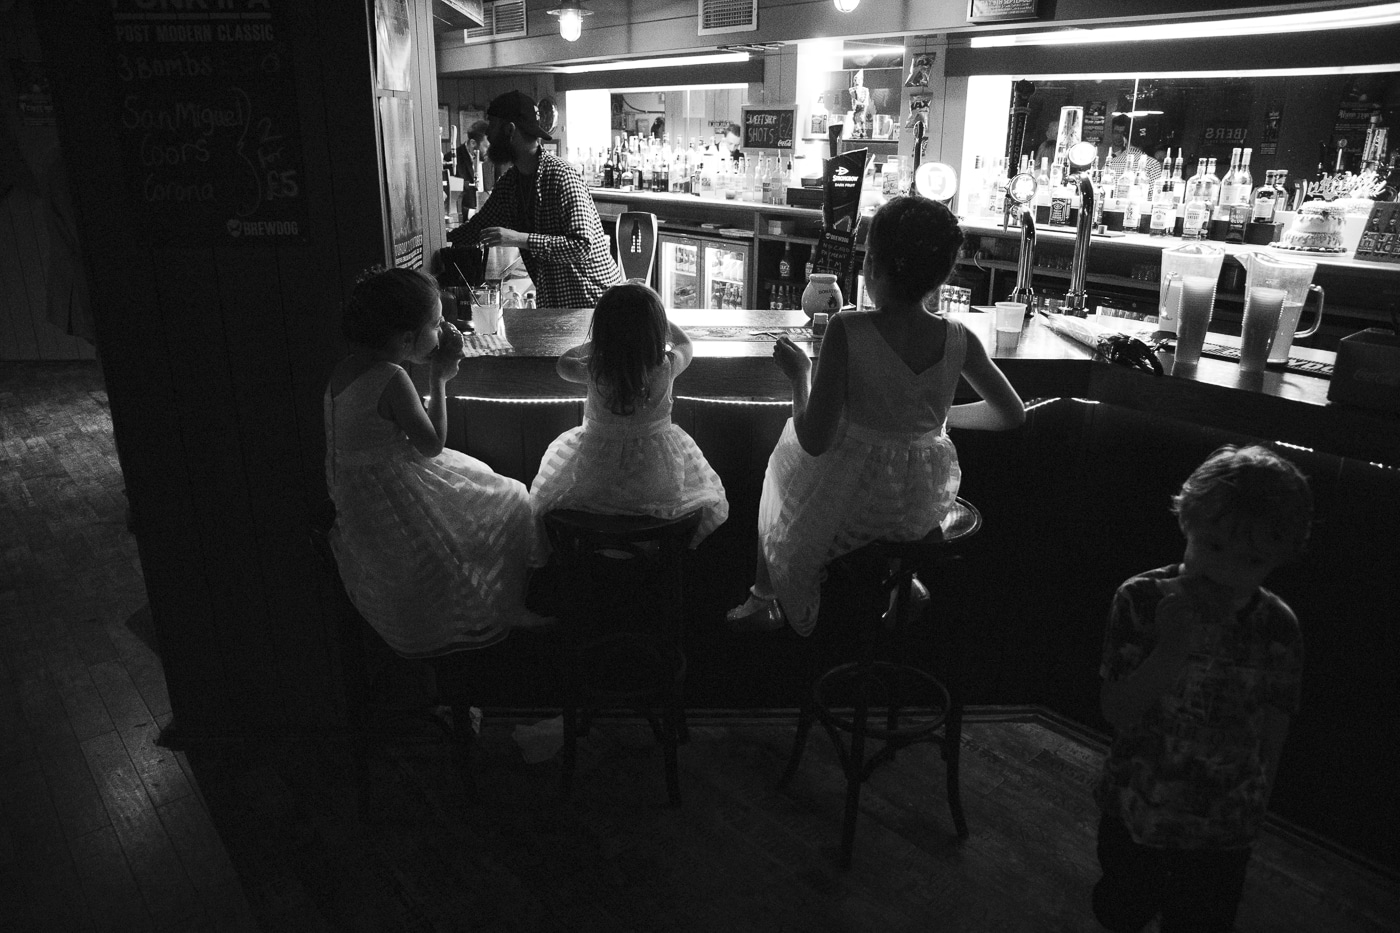 Bridesmaids sitting at bar stools by Joshua Wyborn Photographic